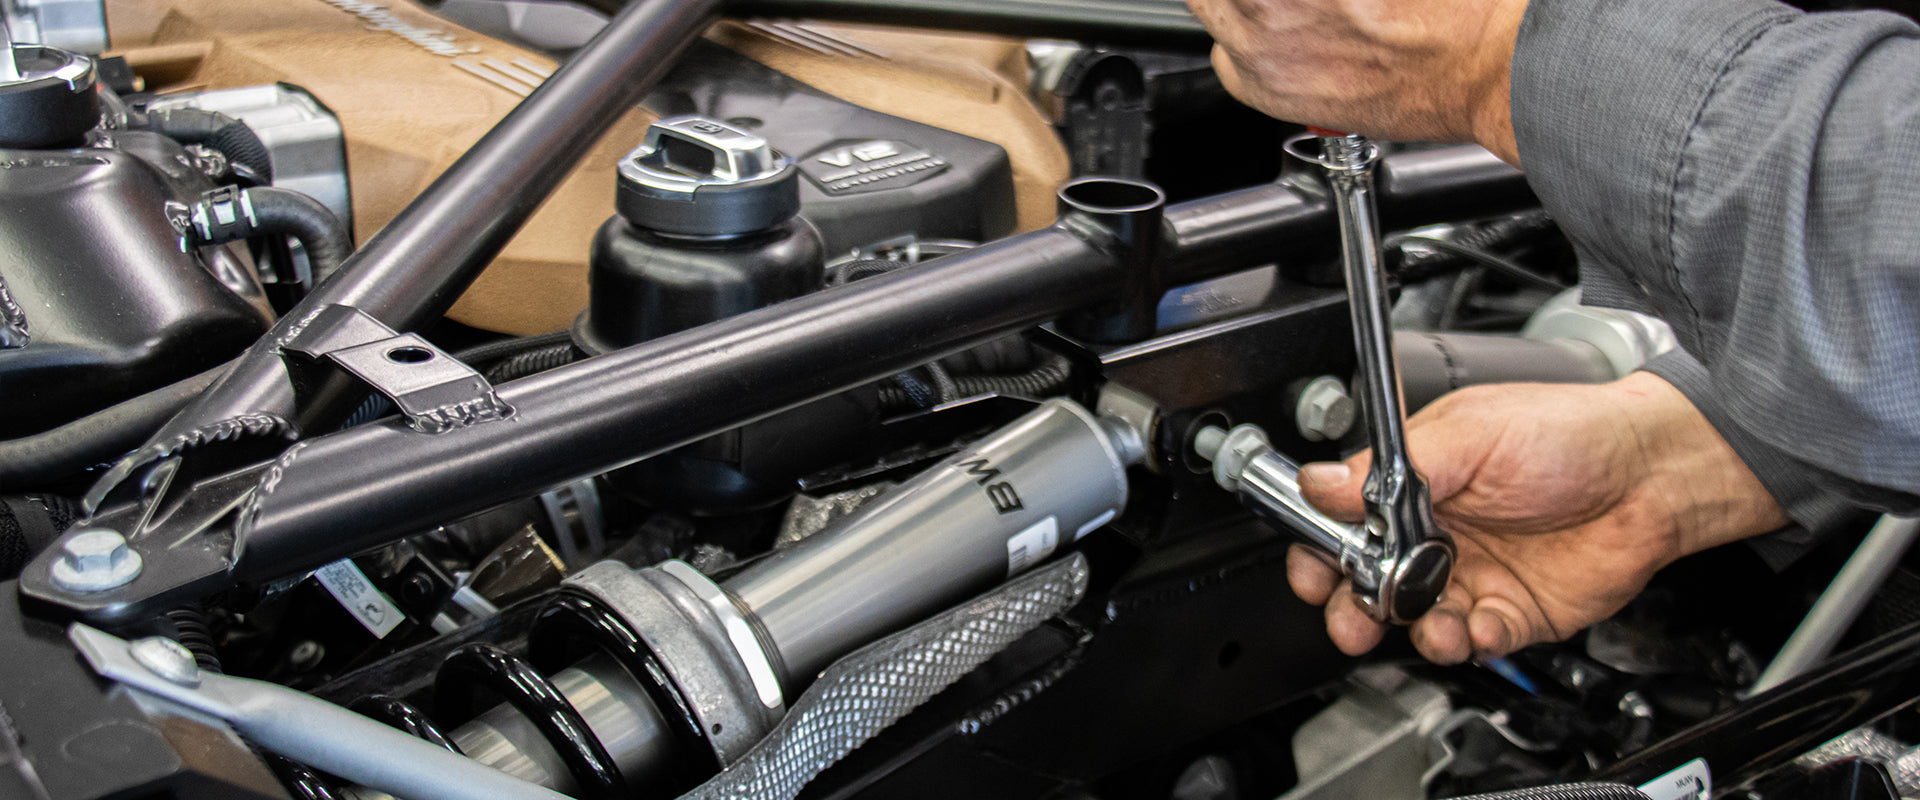 Aftermarket Air Suspension for Exotic Performance Sports Cars and Luxury Vehicles